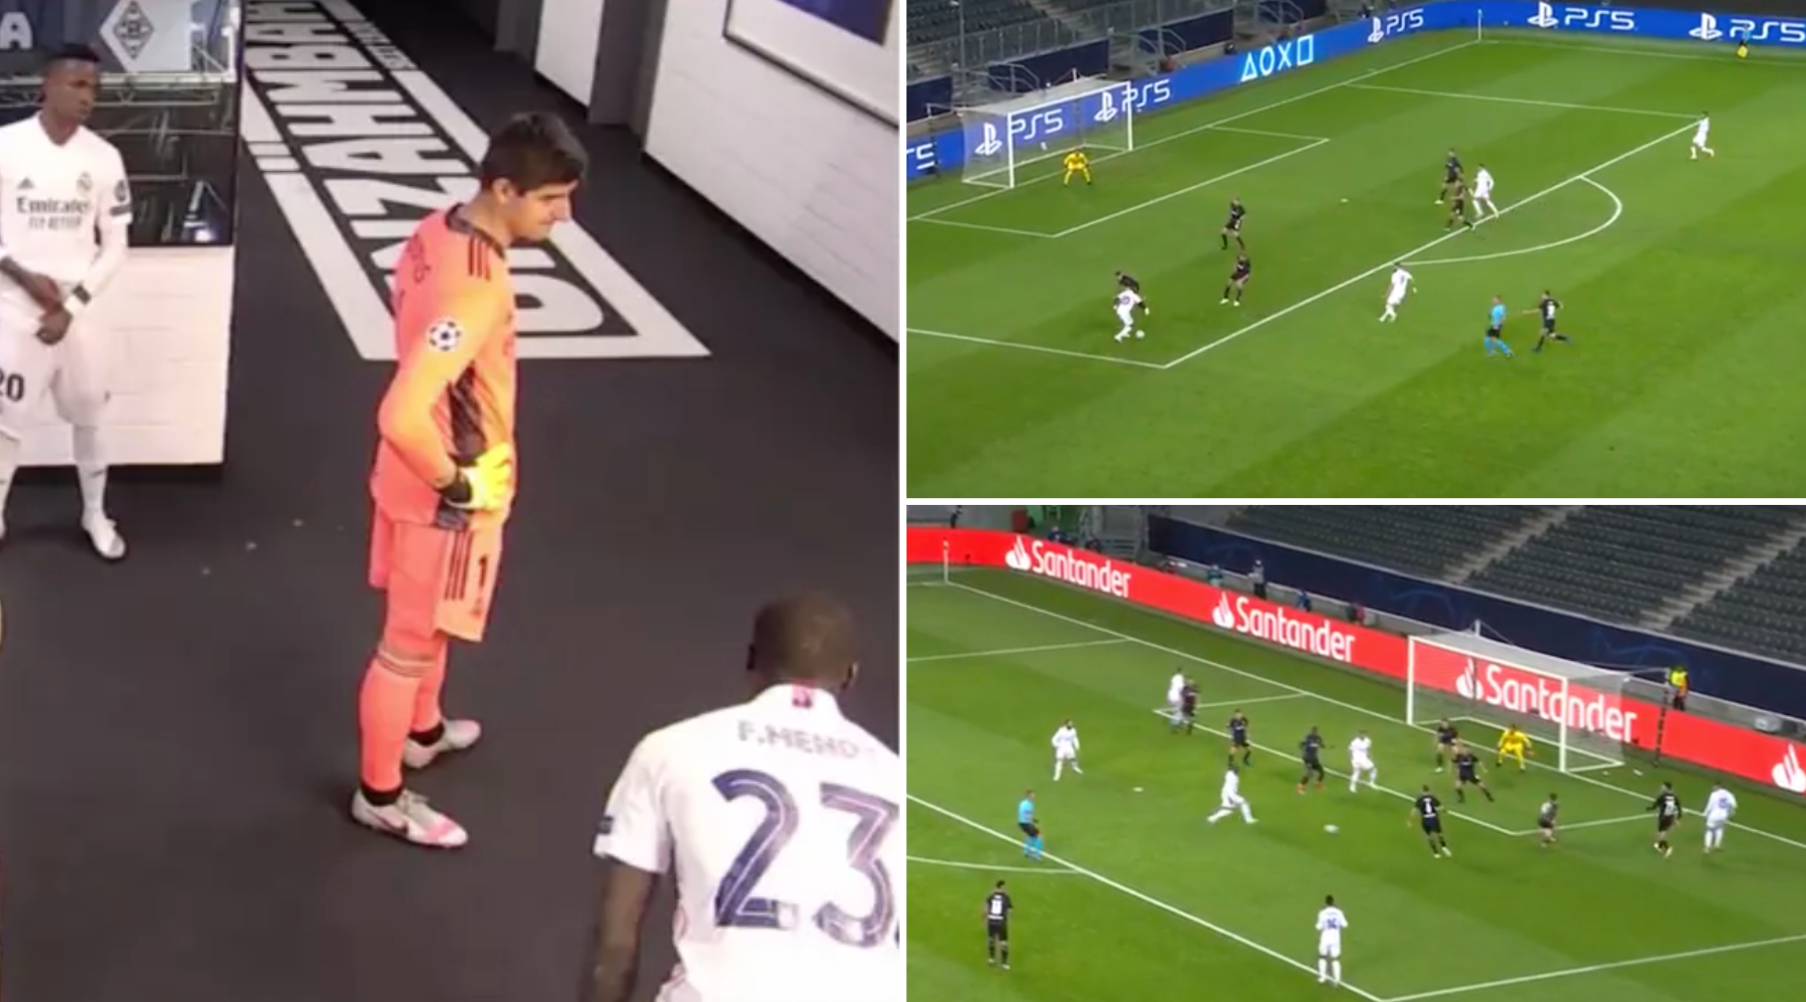 Real Madrid News Vinicius Jr S Highlights Emerge After Karim Benzema Tells Ferland Mendy Not To Pass To Him